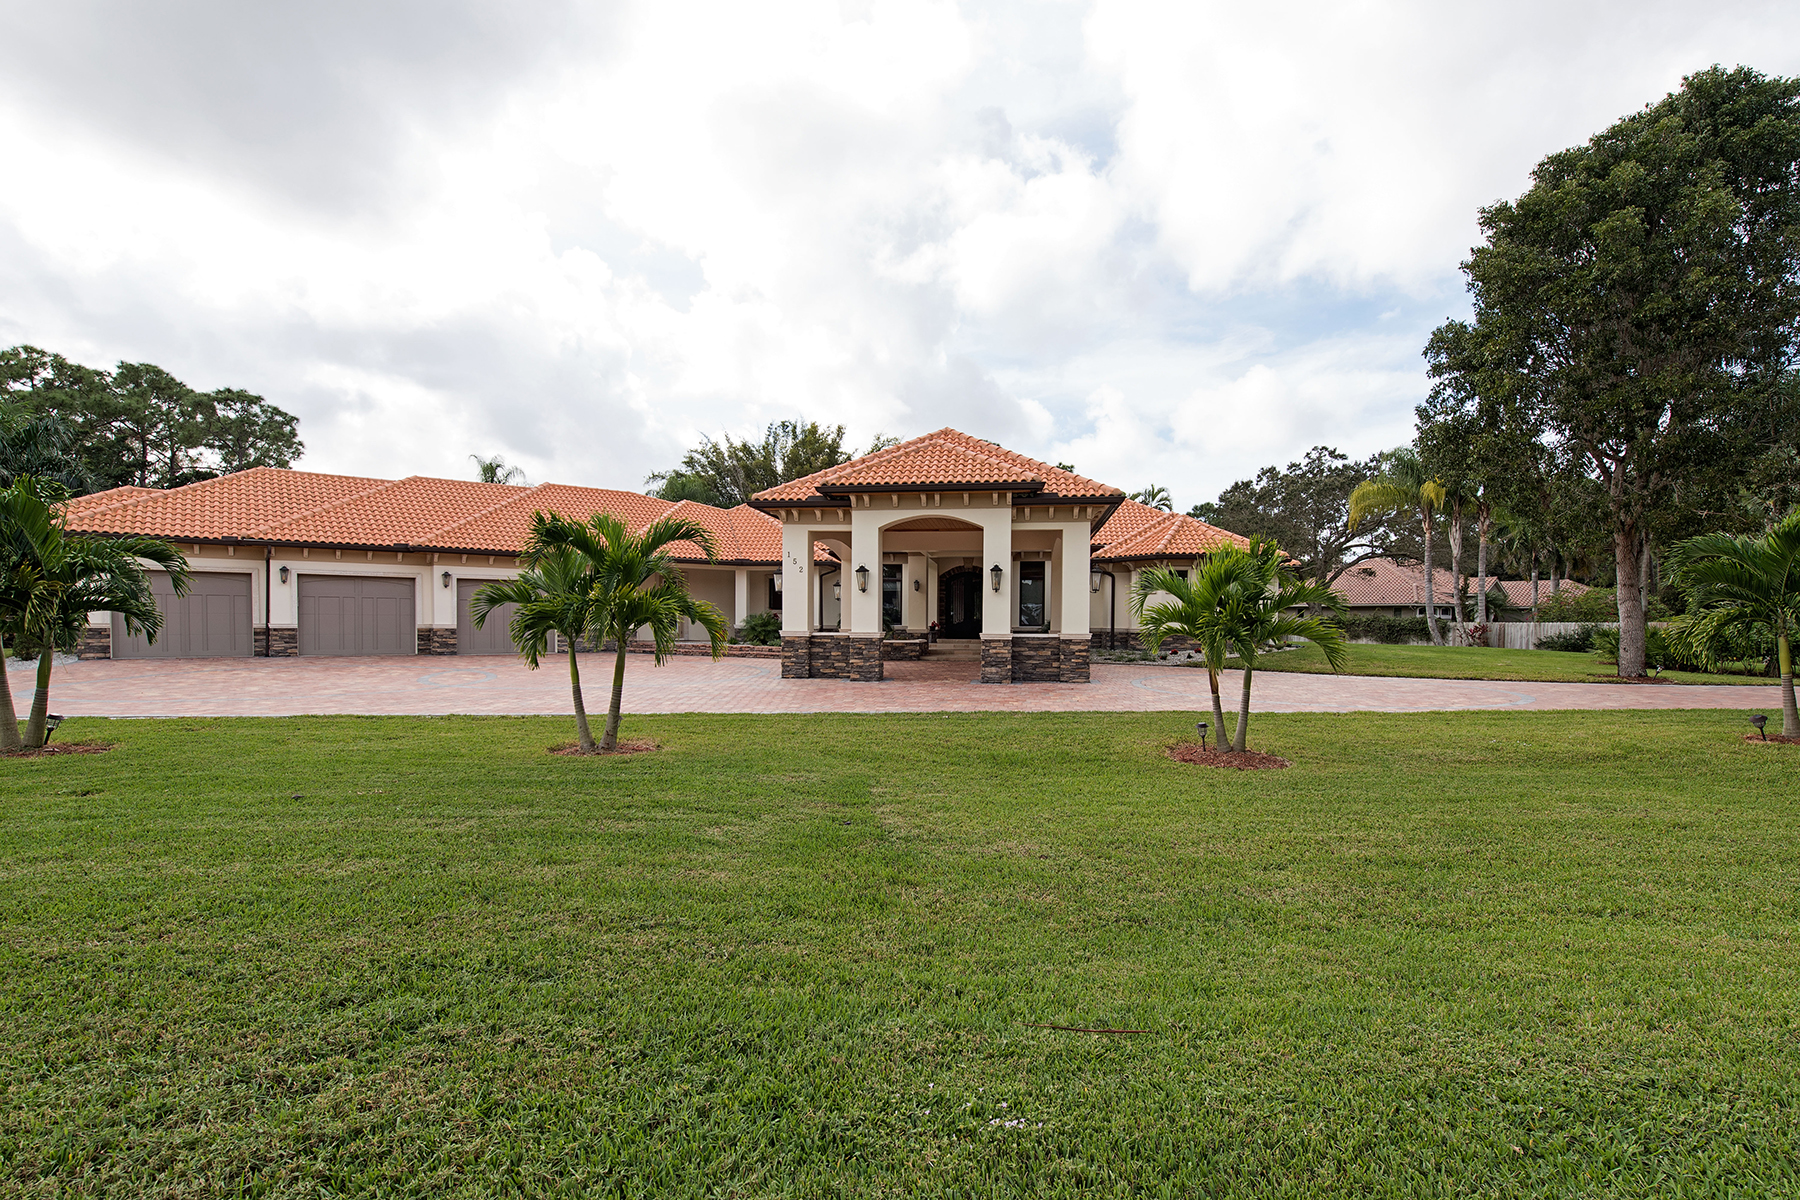 Single Family Home for Sale at PINE RIDGE - PINE RIDGE 152 Carica Rd Naples, Florida 34108 United States